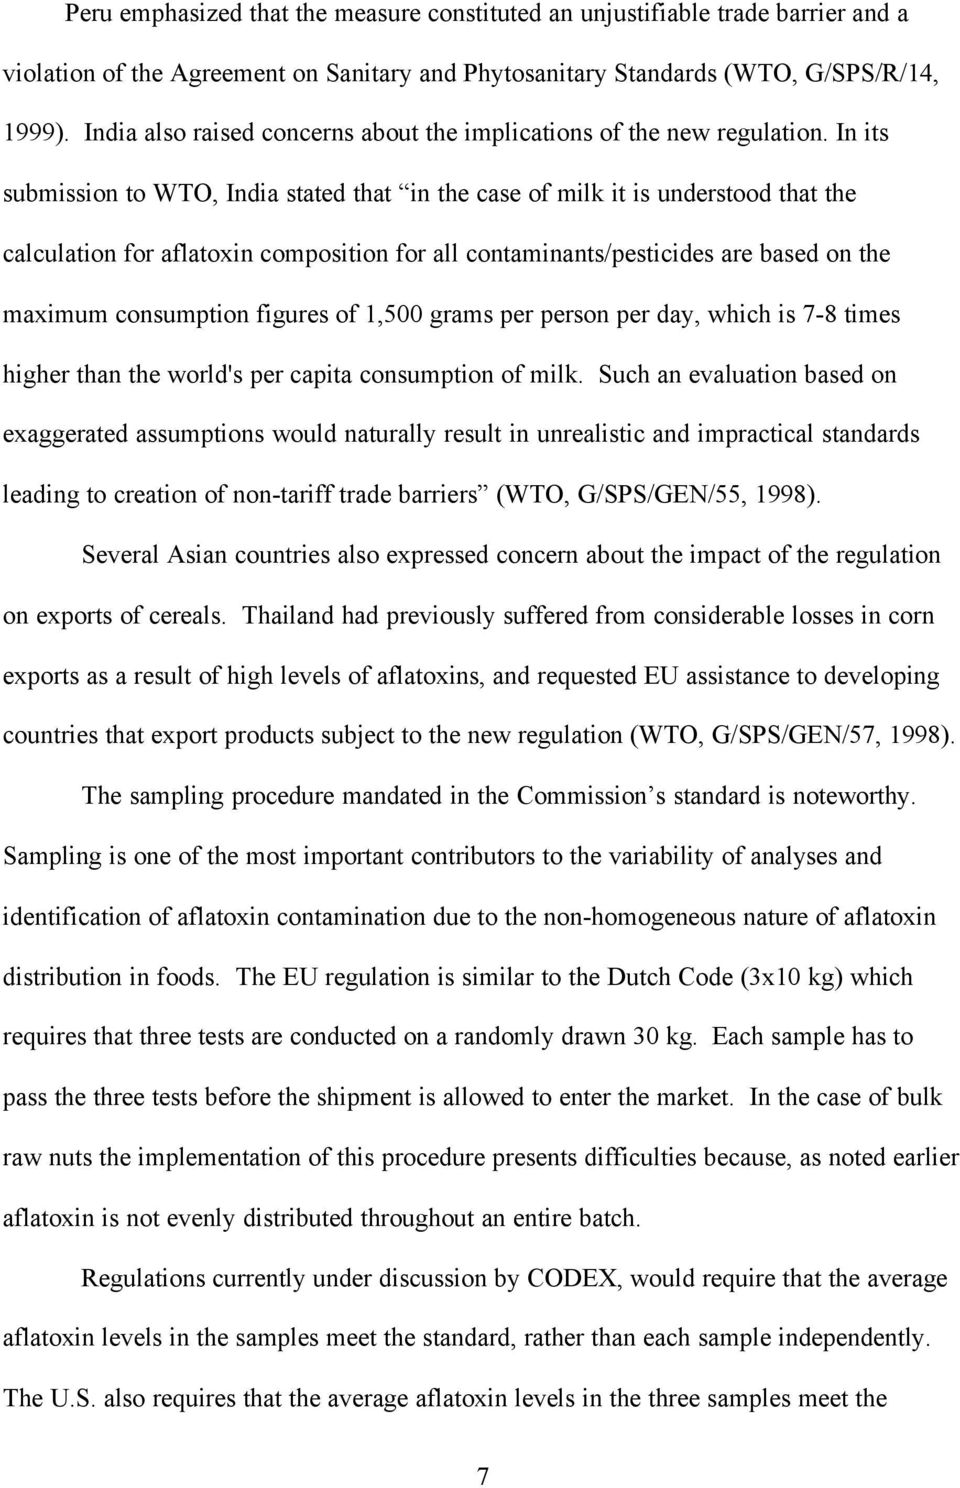 In its submission to WTO, India stated that in the case of milk it is understood that the calculation for aflatoxin composition for all contaminants/pesticides are based on the maximum consumption